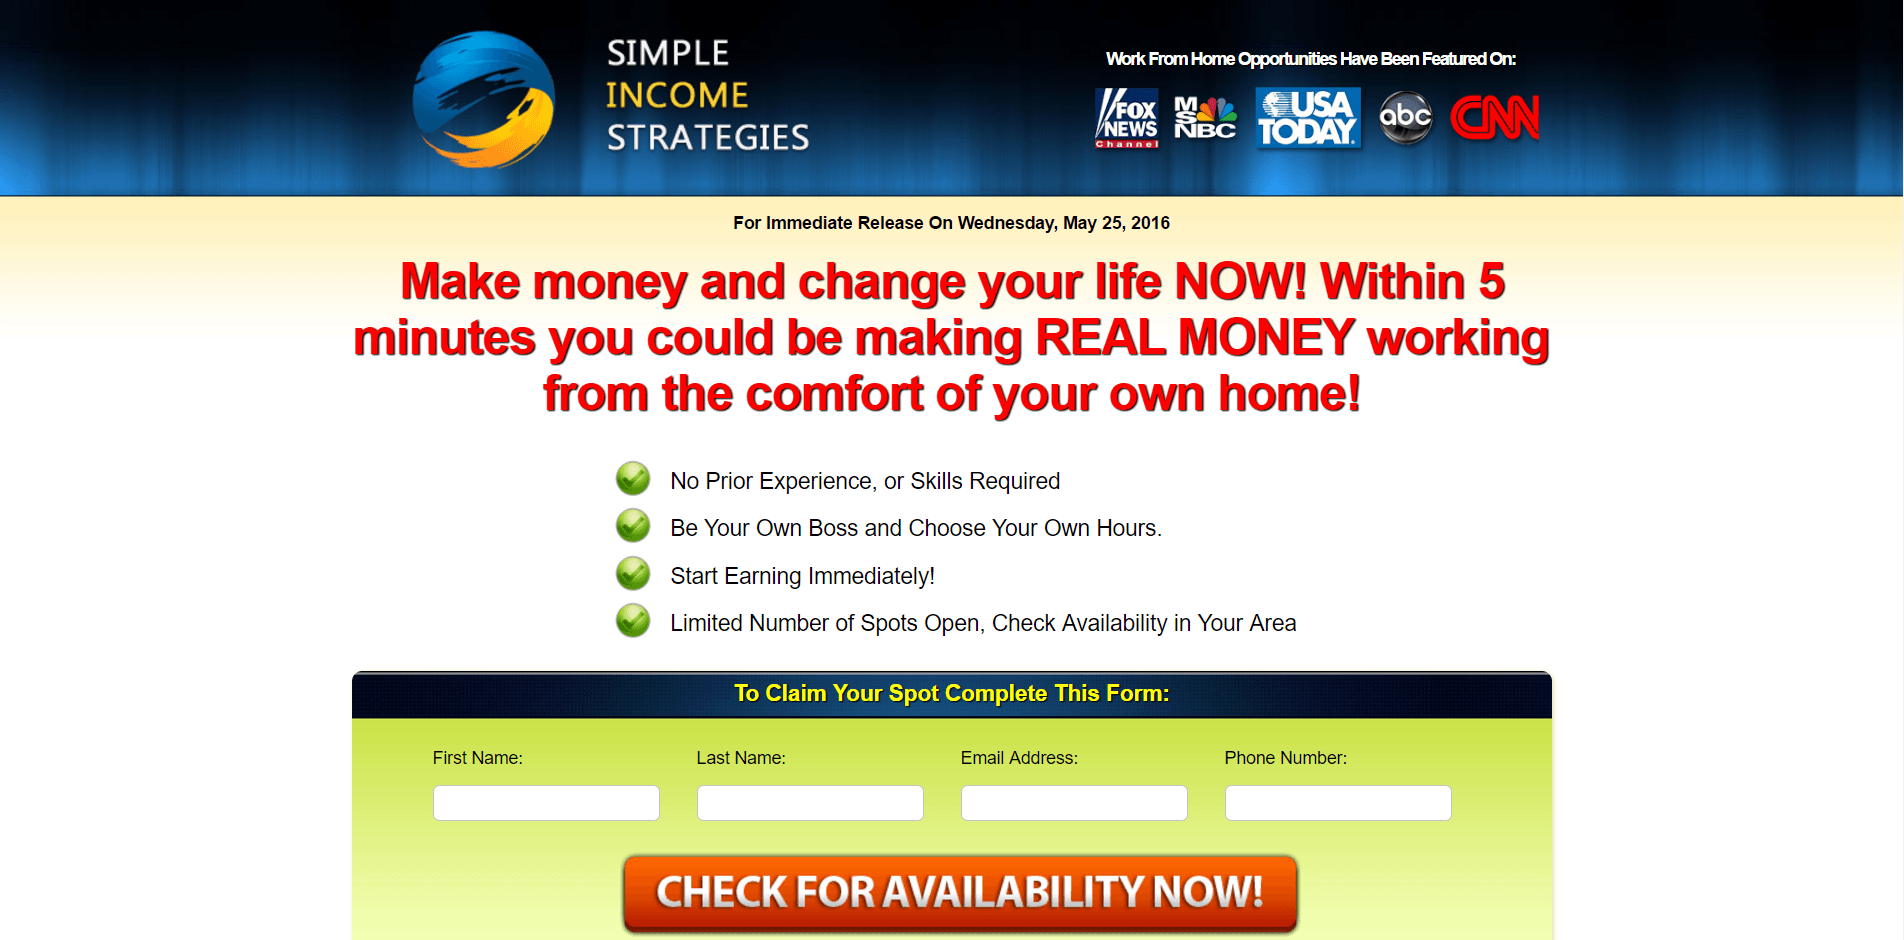 simple income strategies a scam